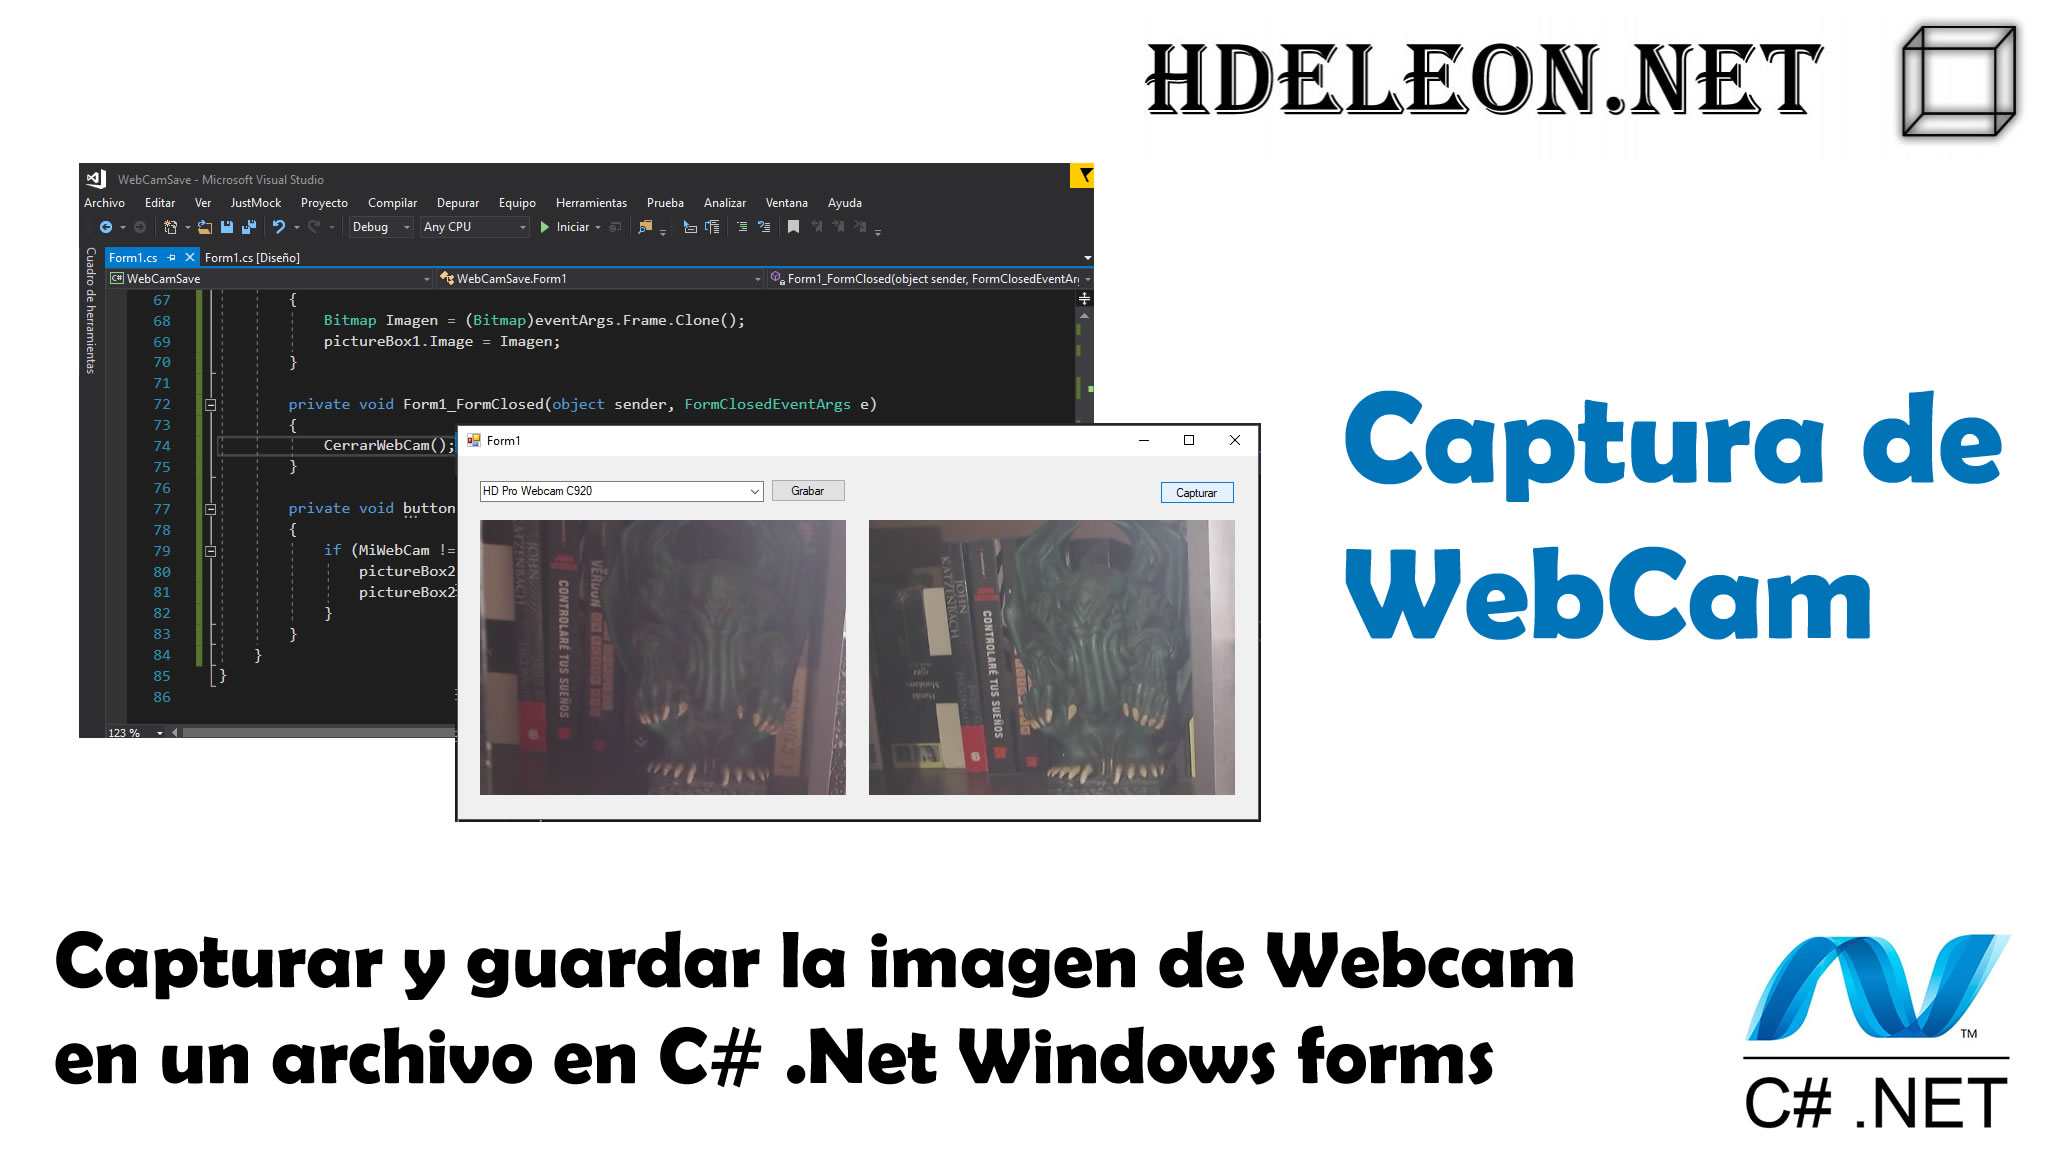 Capturar y guardar la imagen en Webcam en un archivo en C# .Net Windows Forms